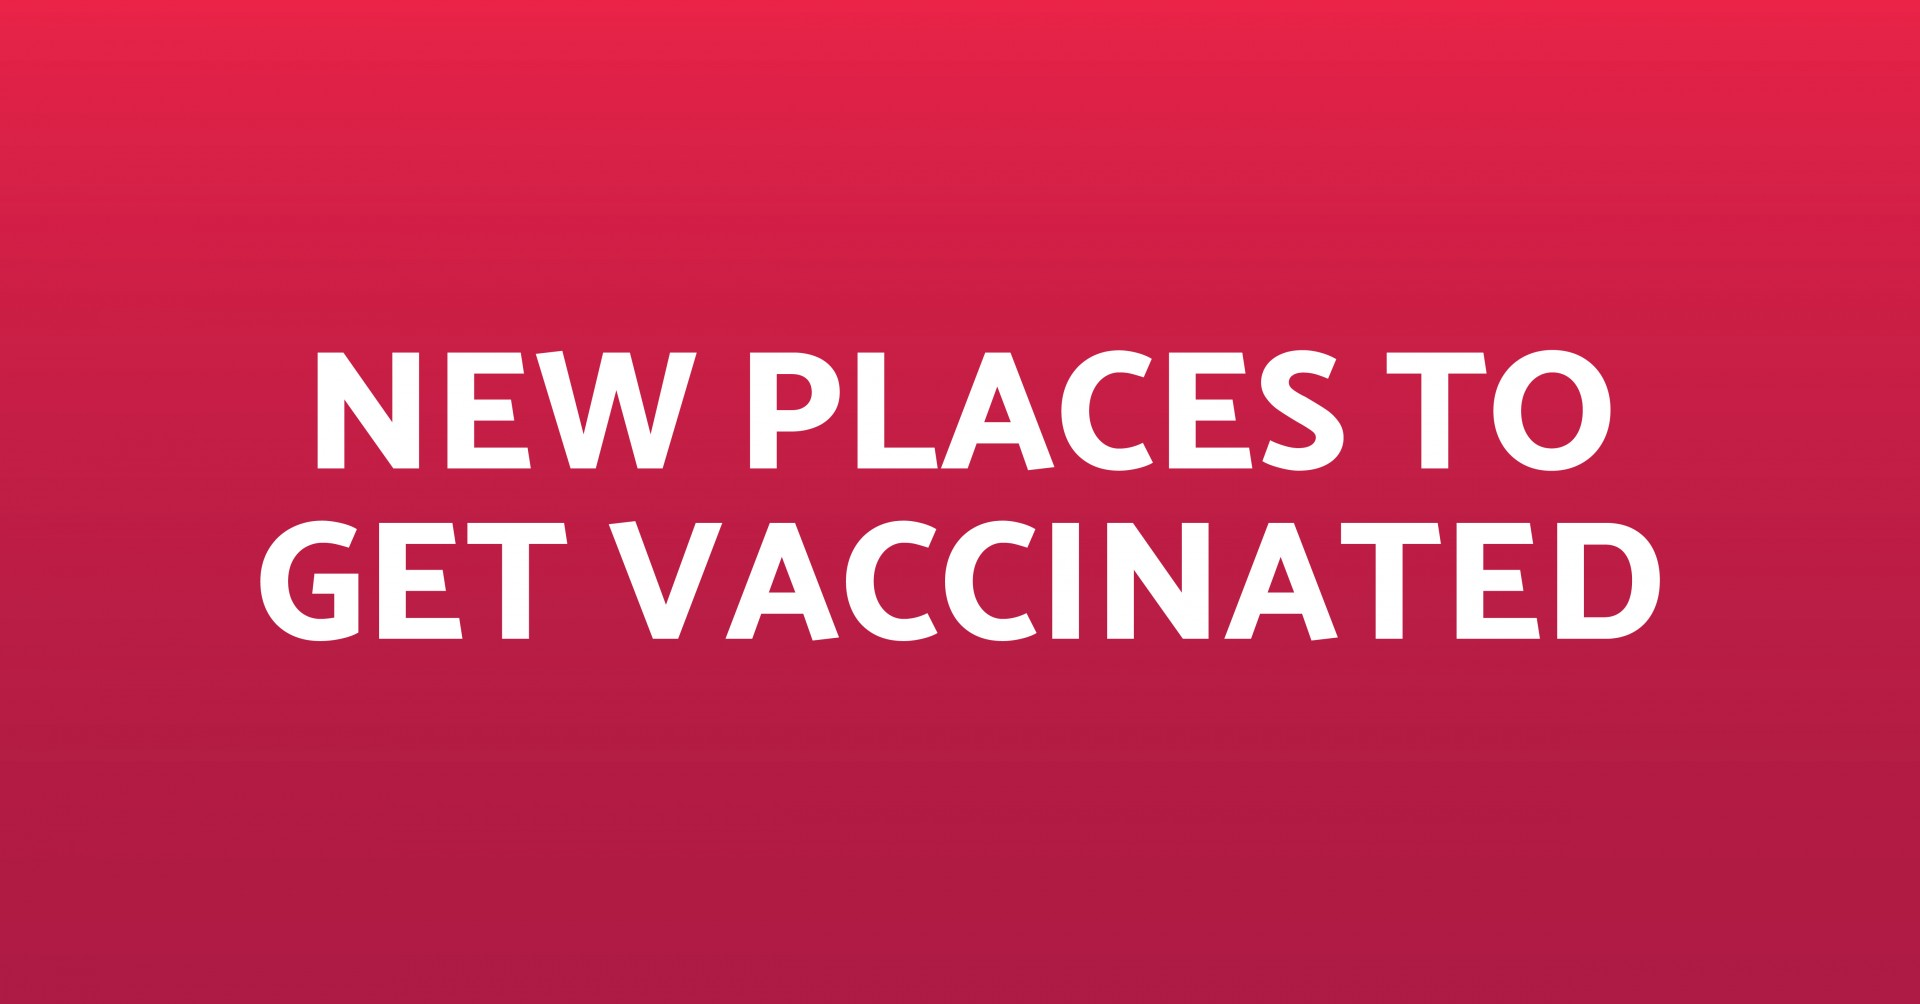 New Places to Get Vaccinated_1200x628